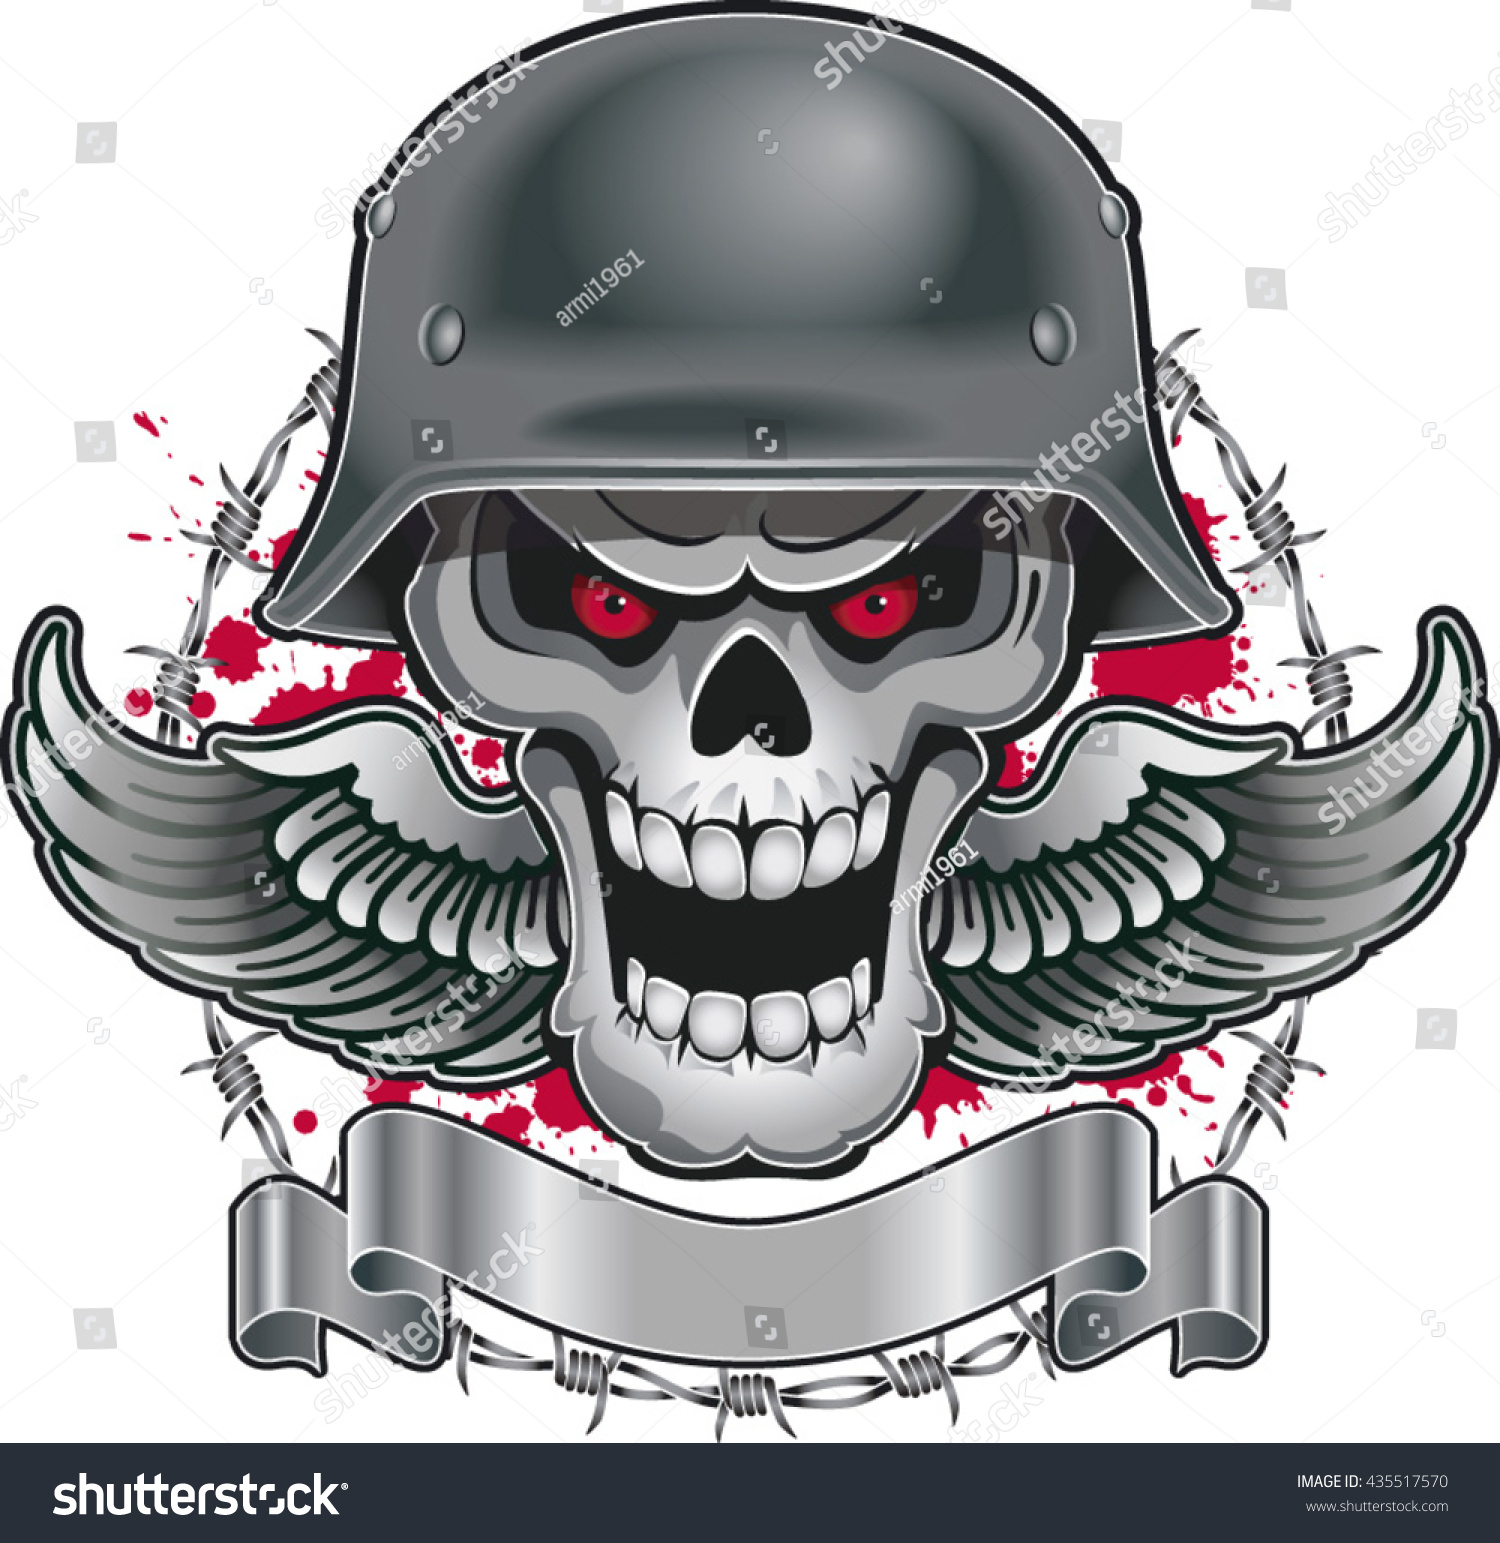 Skull with military helmet wings barbed wire end banner 435517570